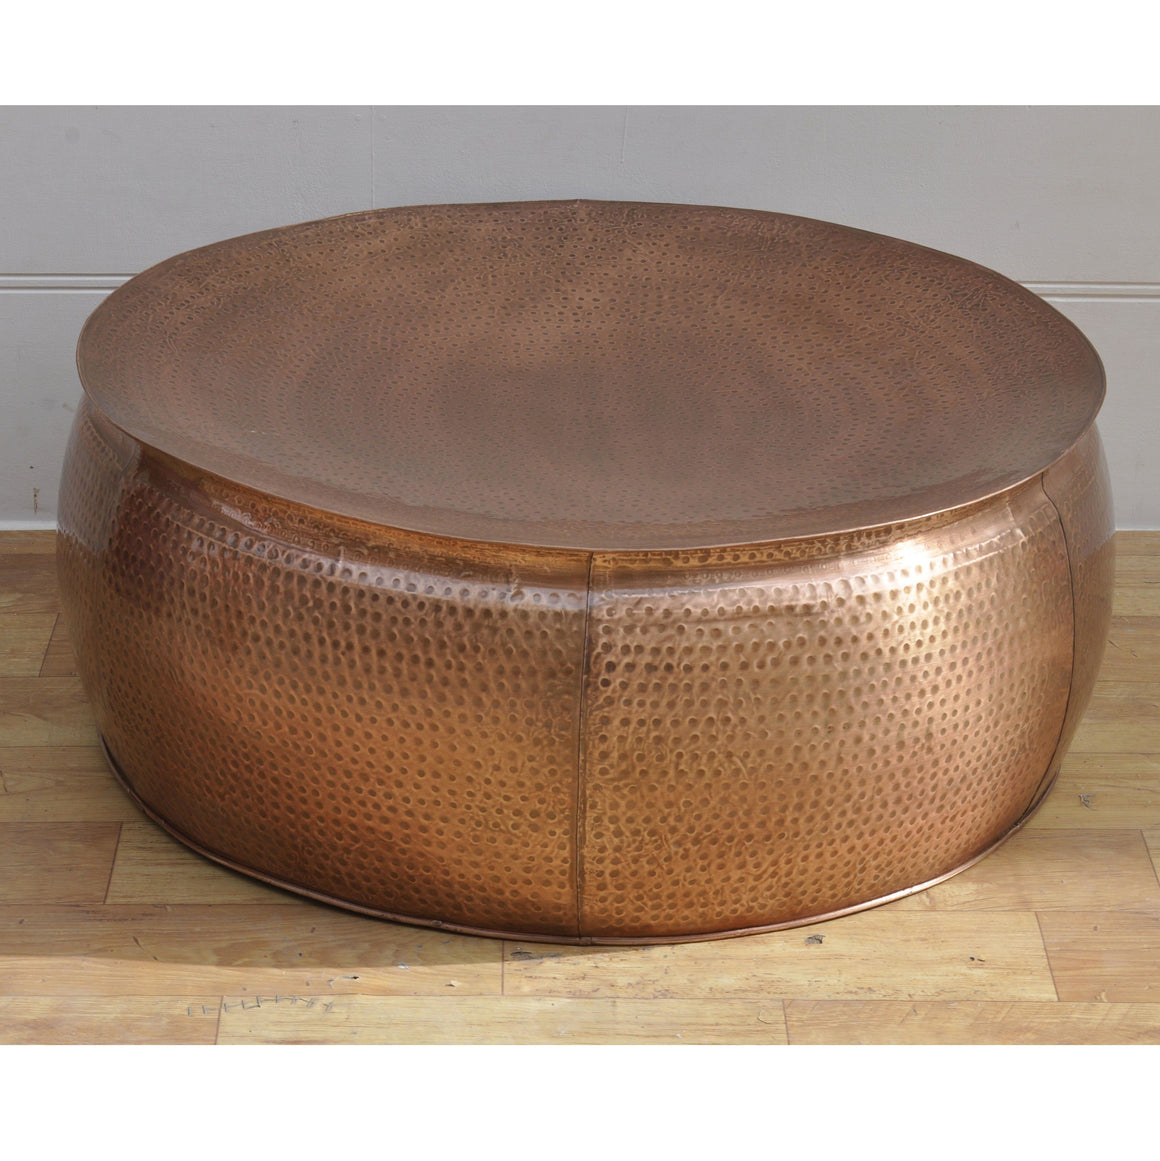 BRONZE LOOK HAMMERED COFFEE TABLE Philbee Interiors